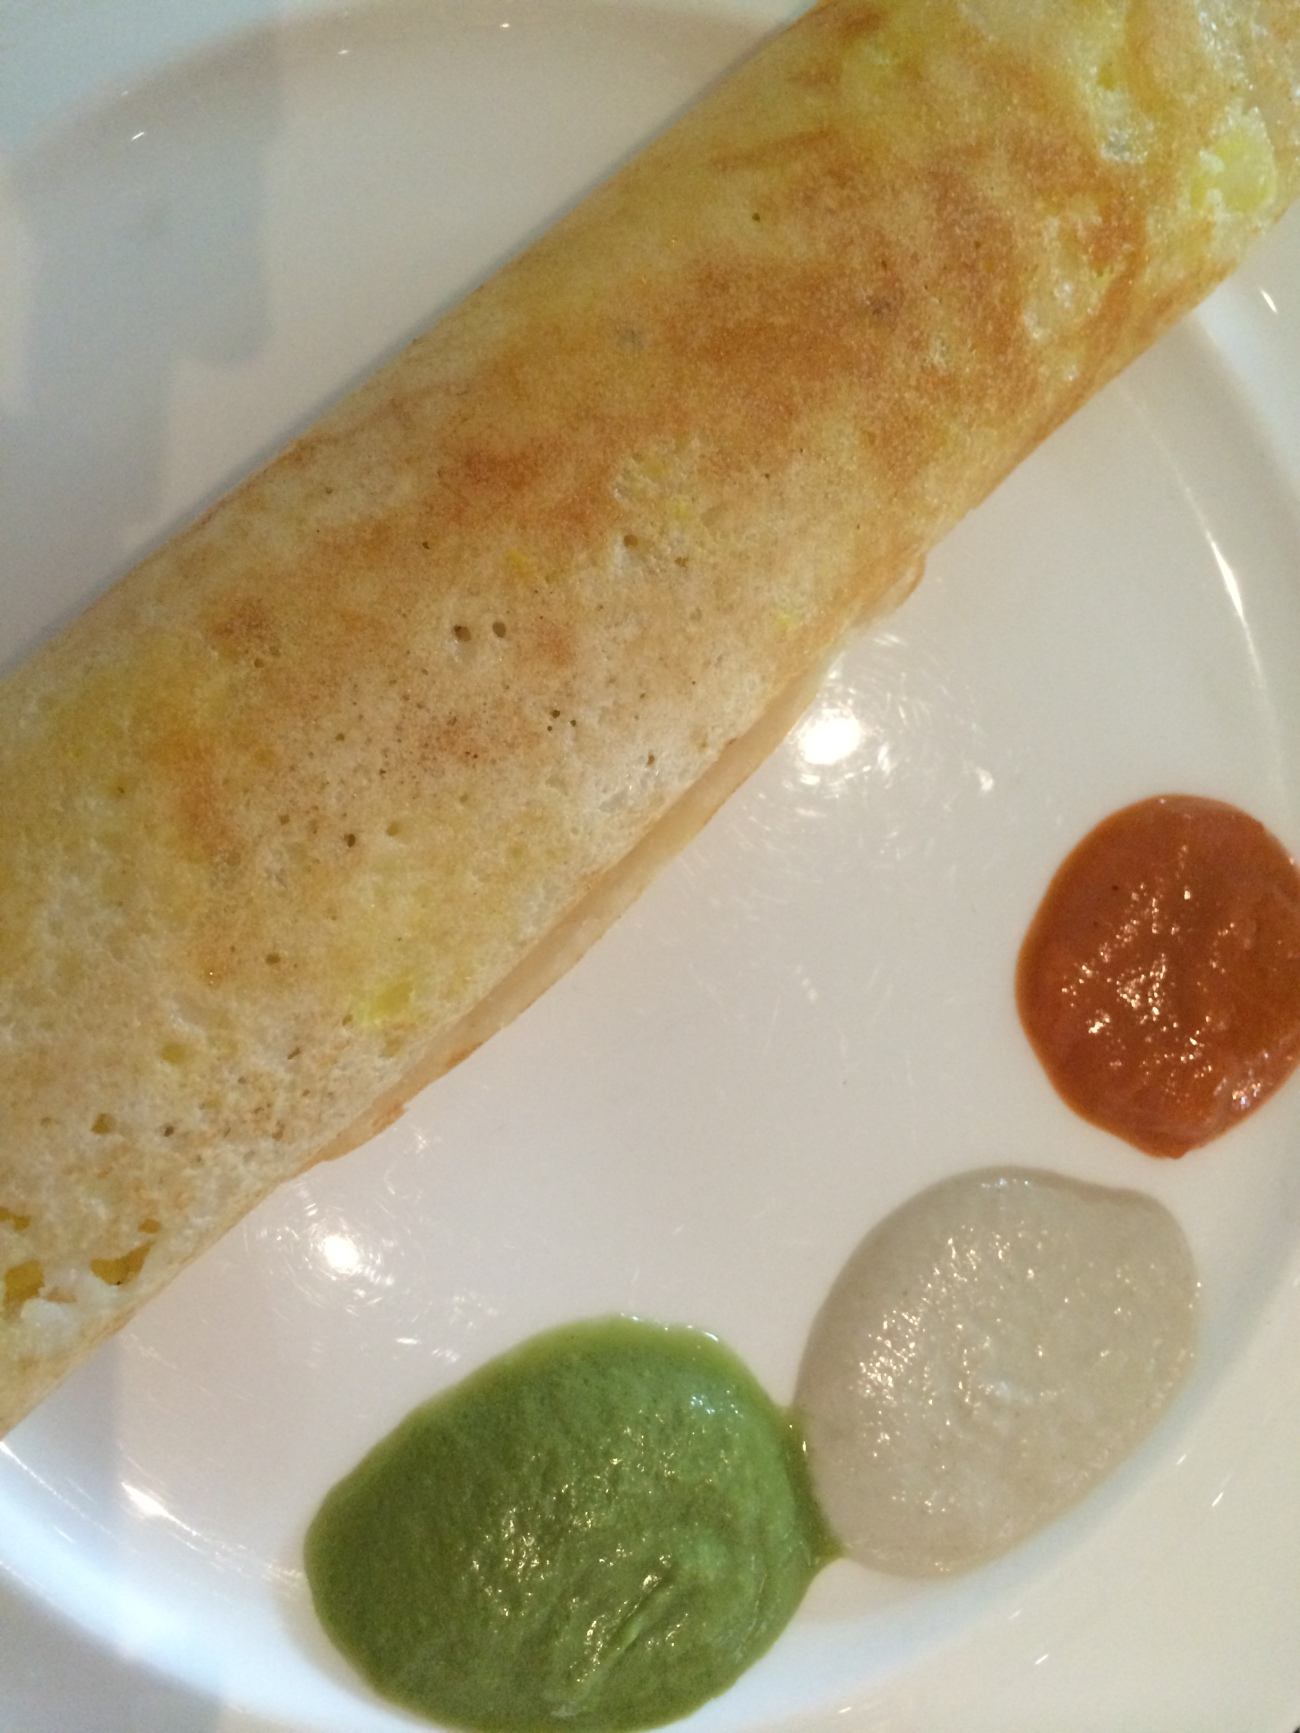 Breakfast South India style - dosa is a thin pancake stuffed with potato and served with coconut, coriander or tomato chutne